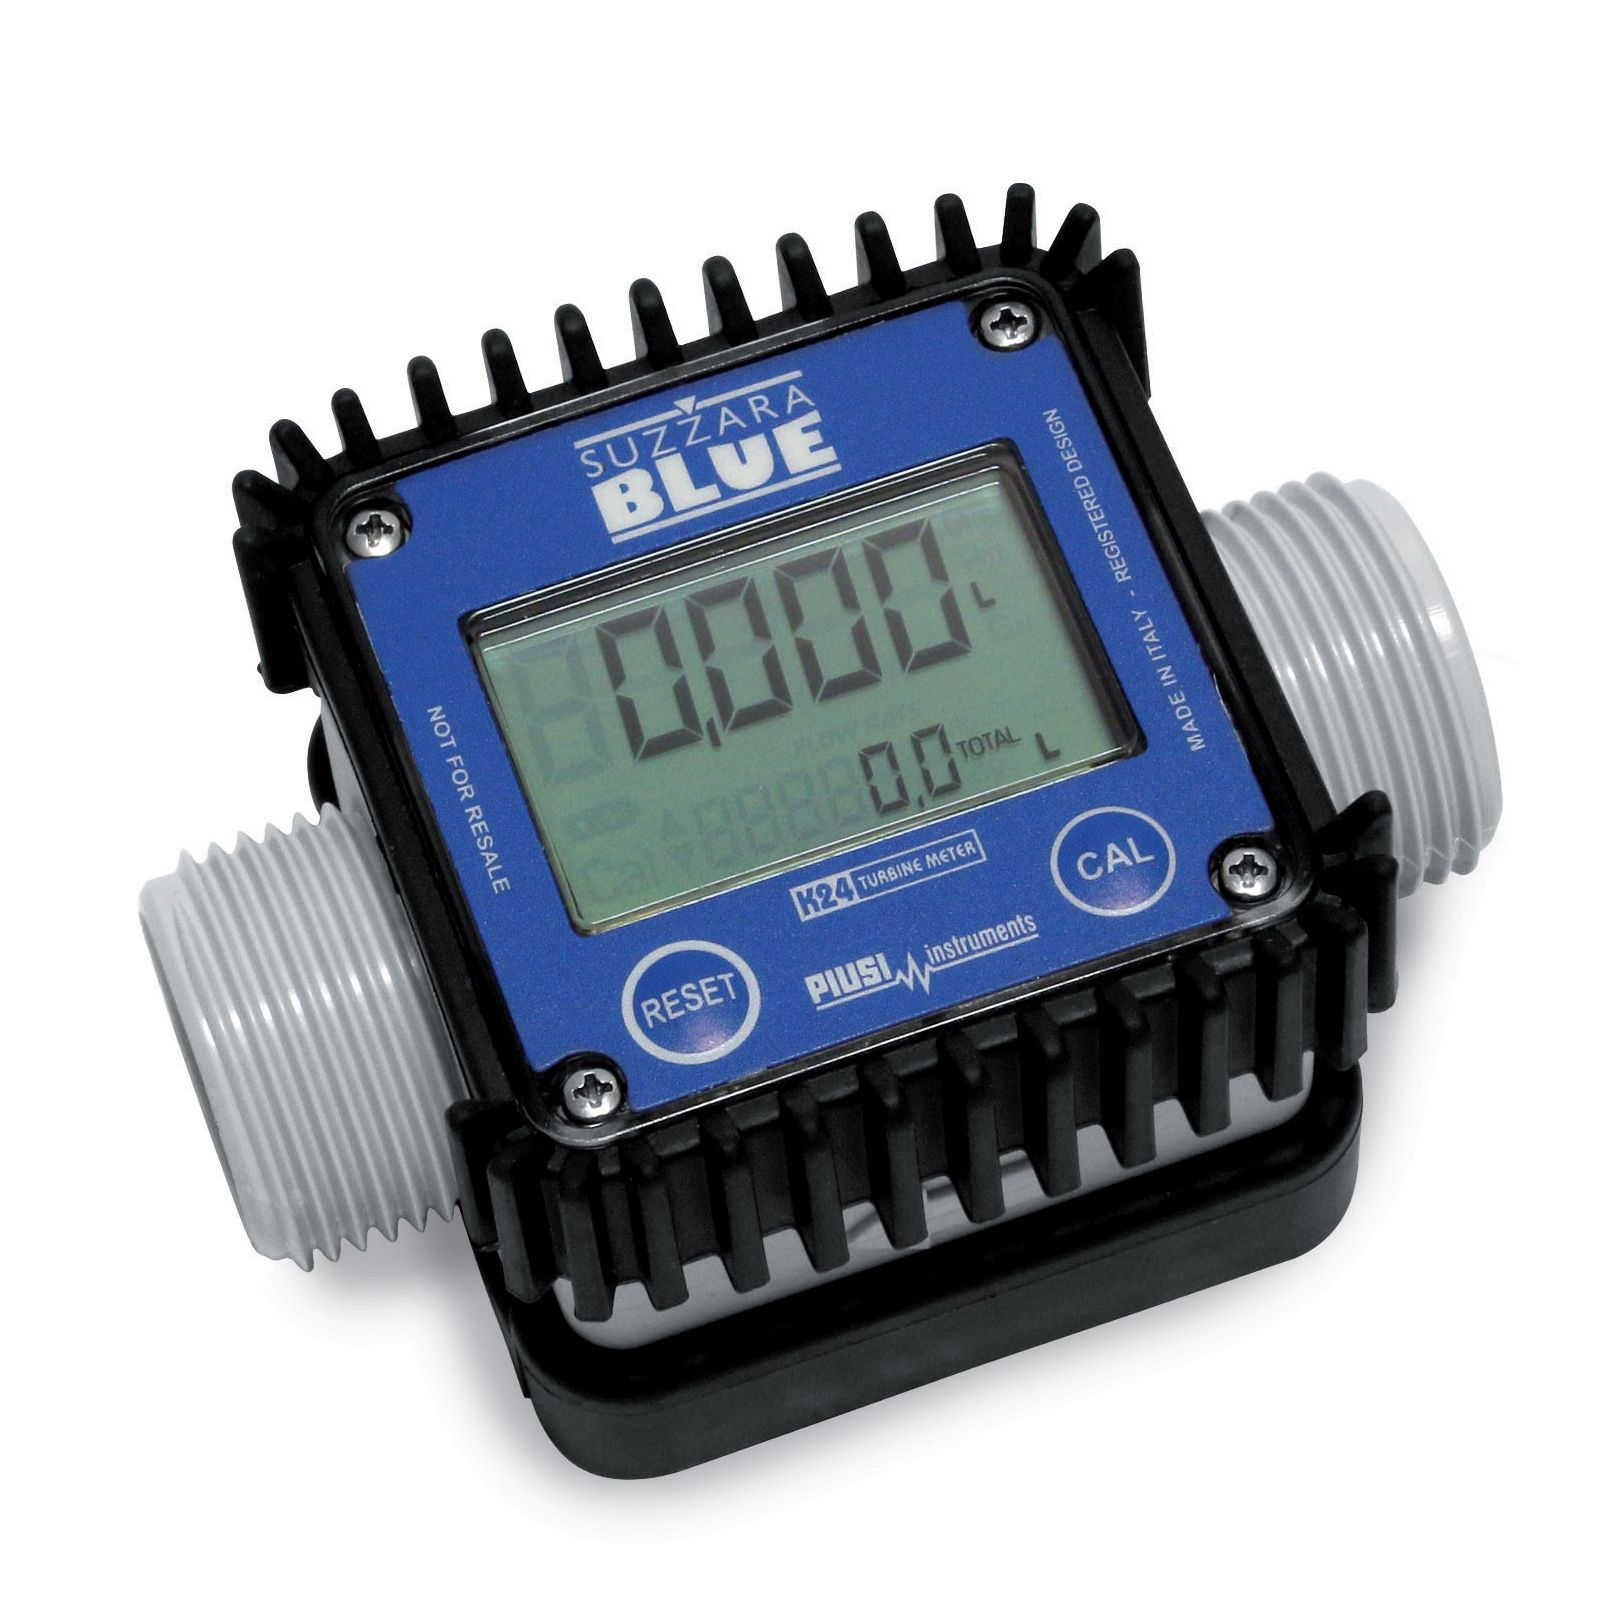 A Digital Flow Meter for DEF with a turbine measuring system Easy